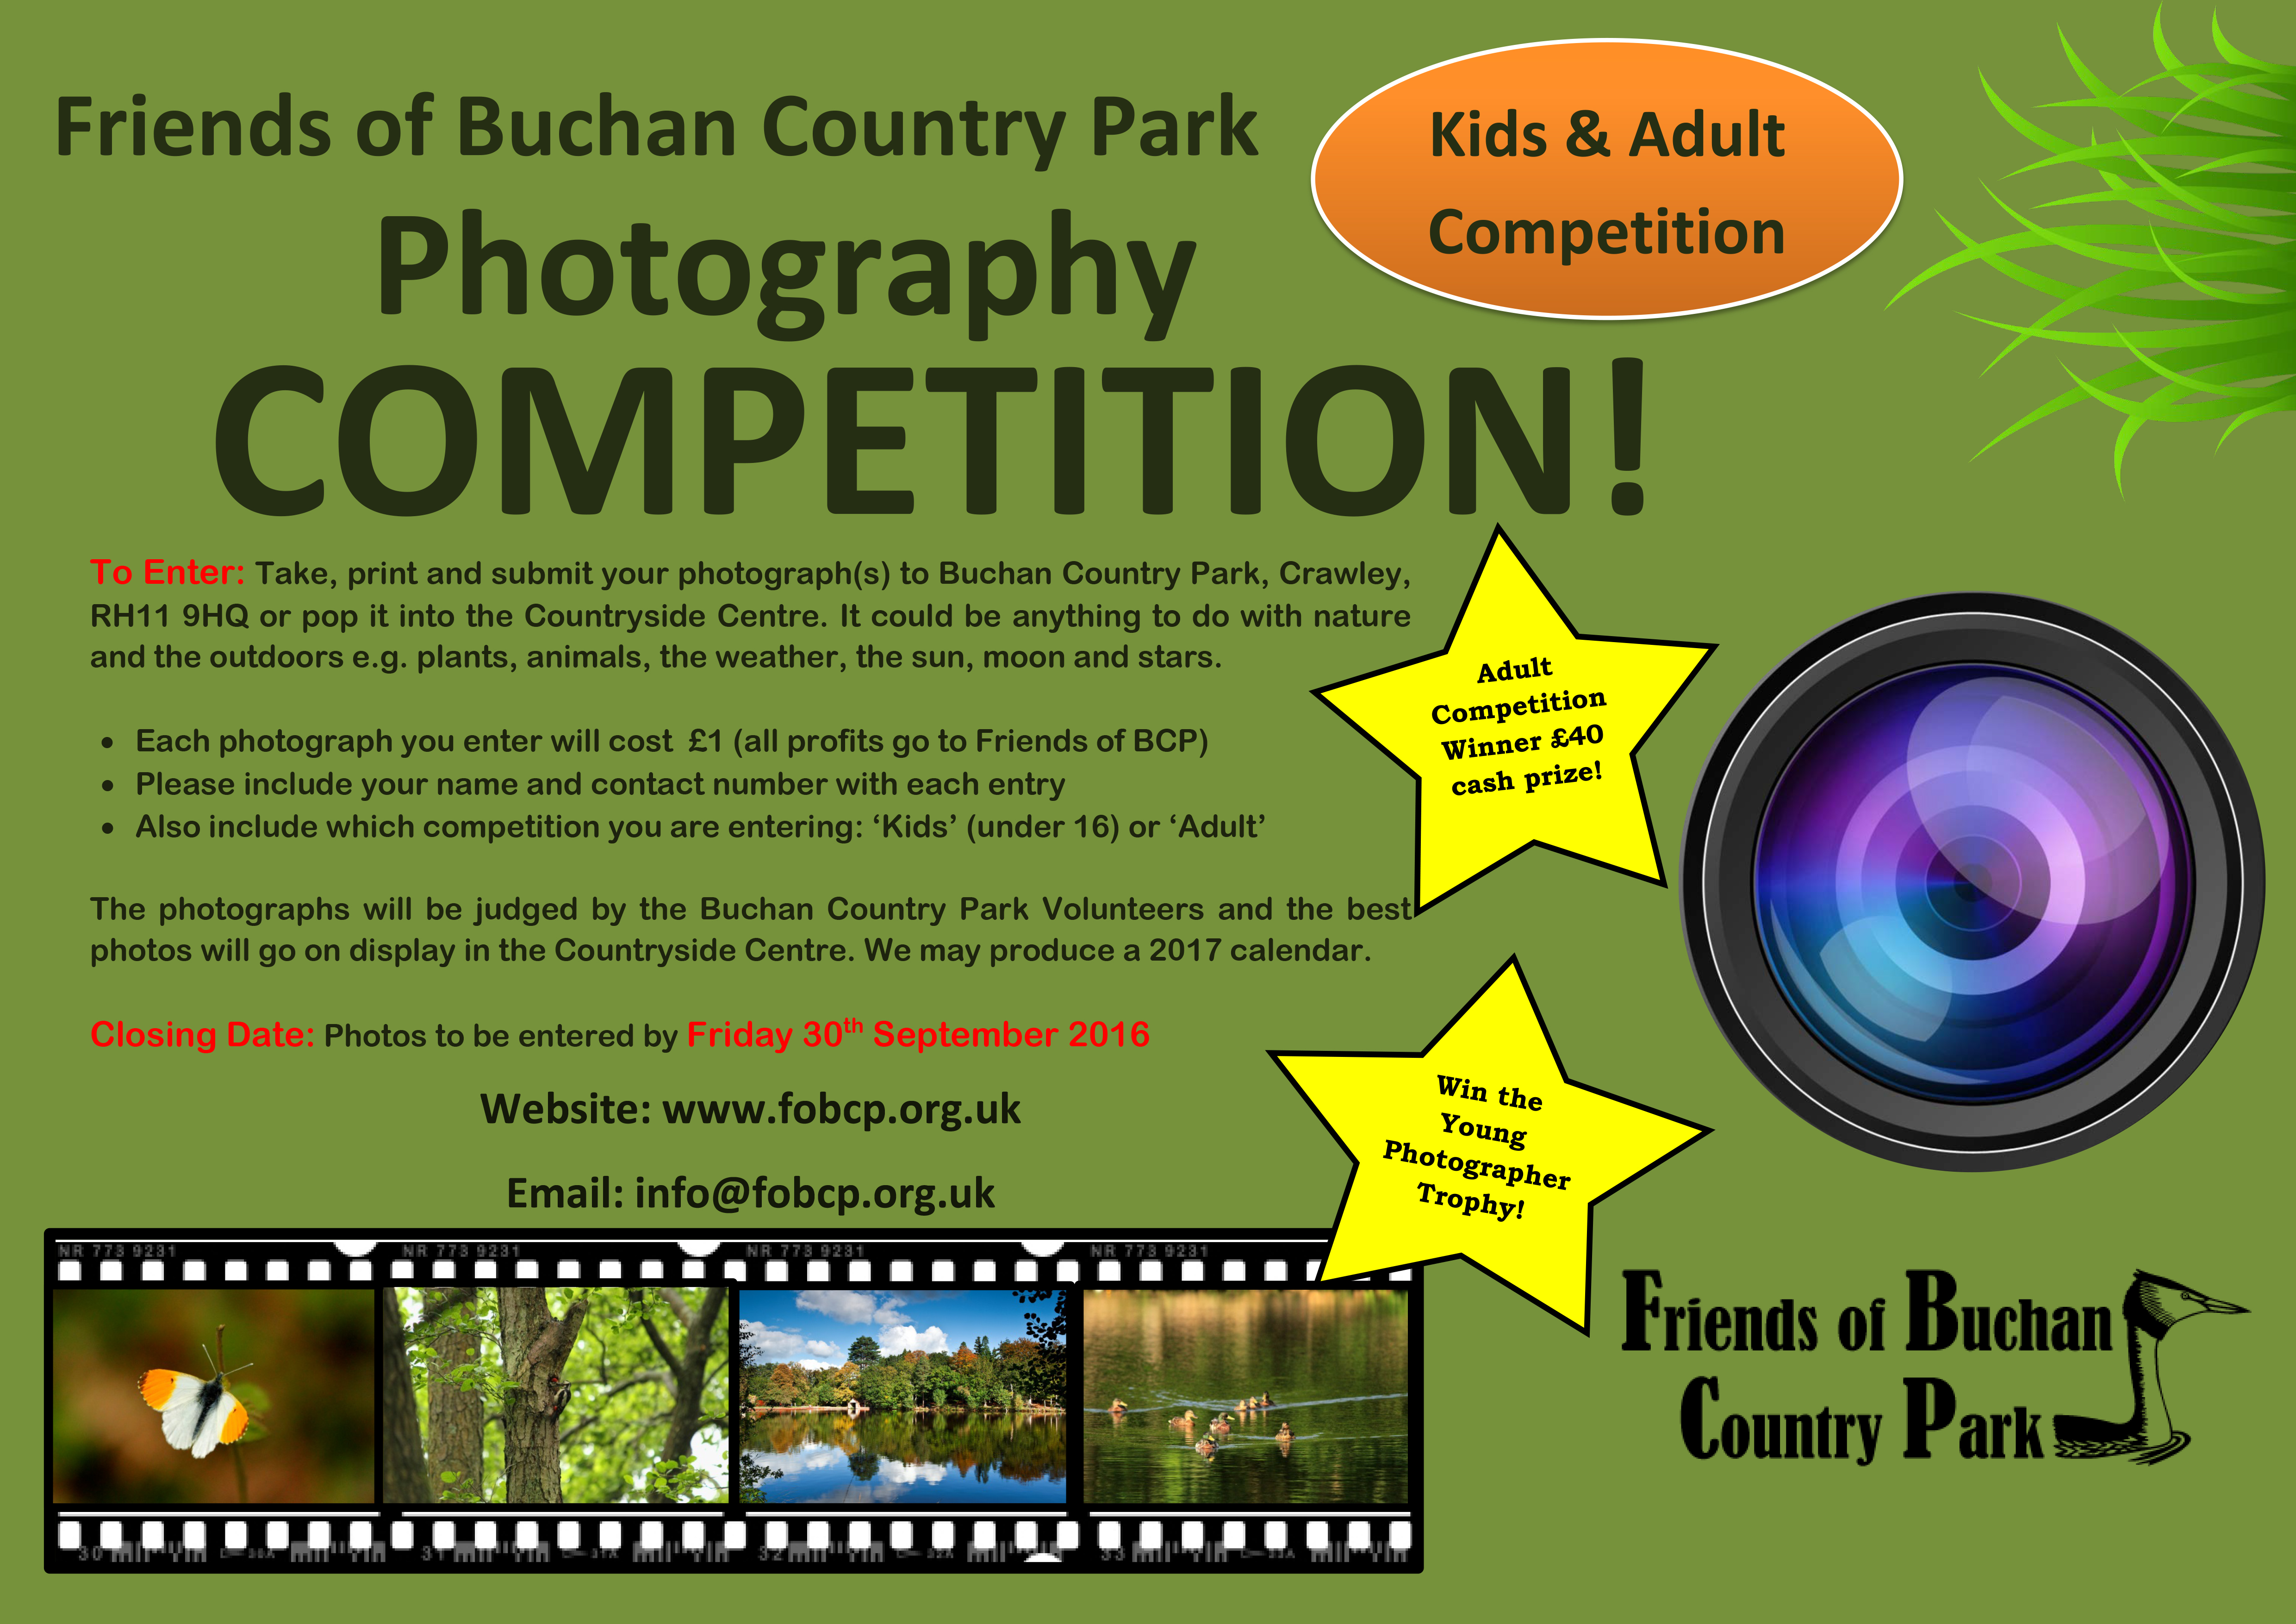 Friends Of Buchan Country Park Photography Competition 2016 poster | fobcp.org.uk